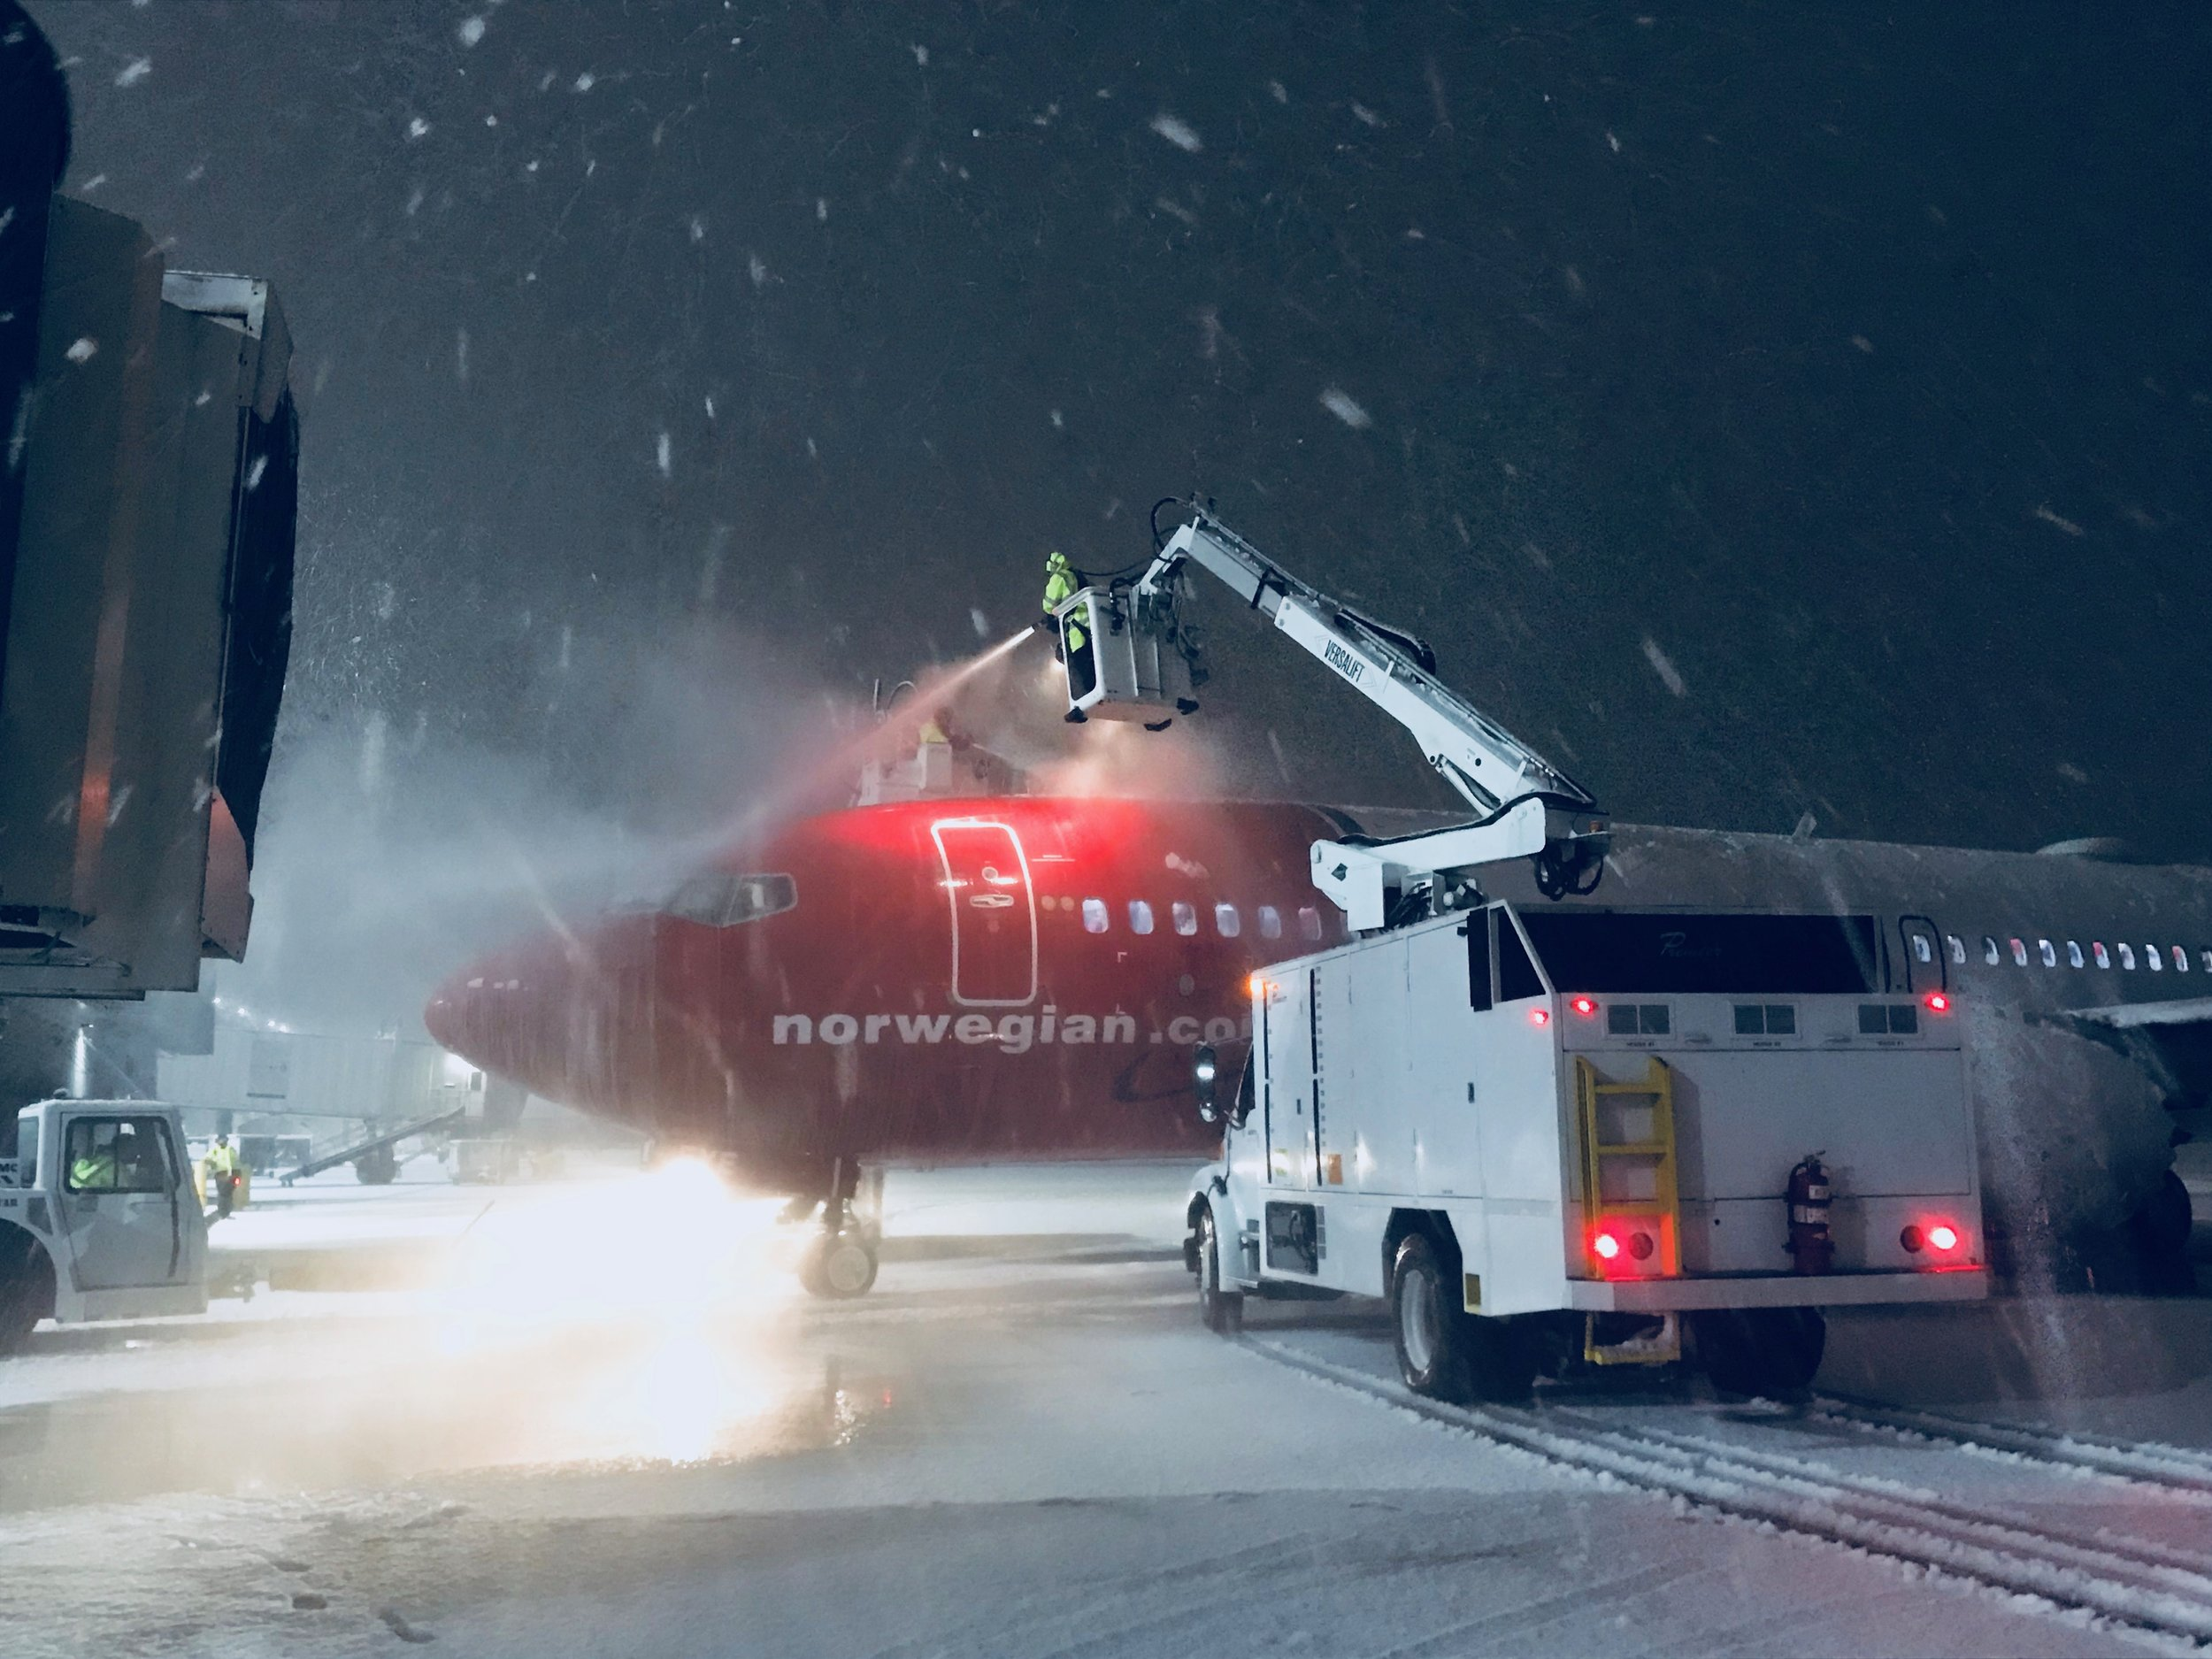 Deicing services at TF Green Airport, Providence, RI.